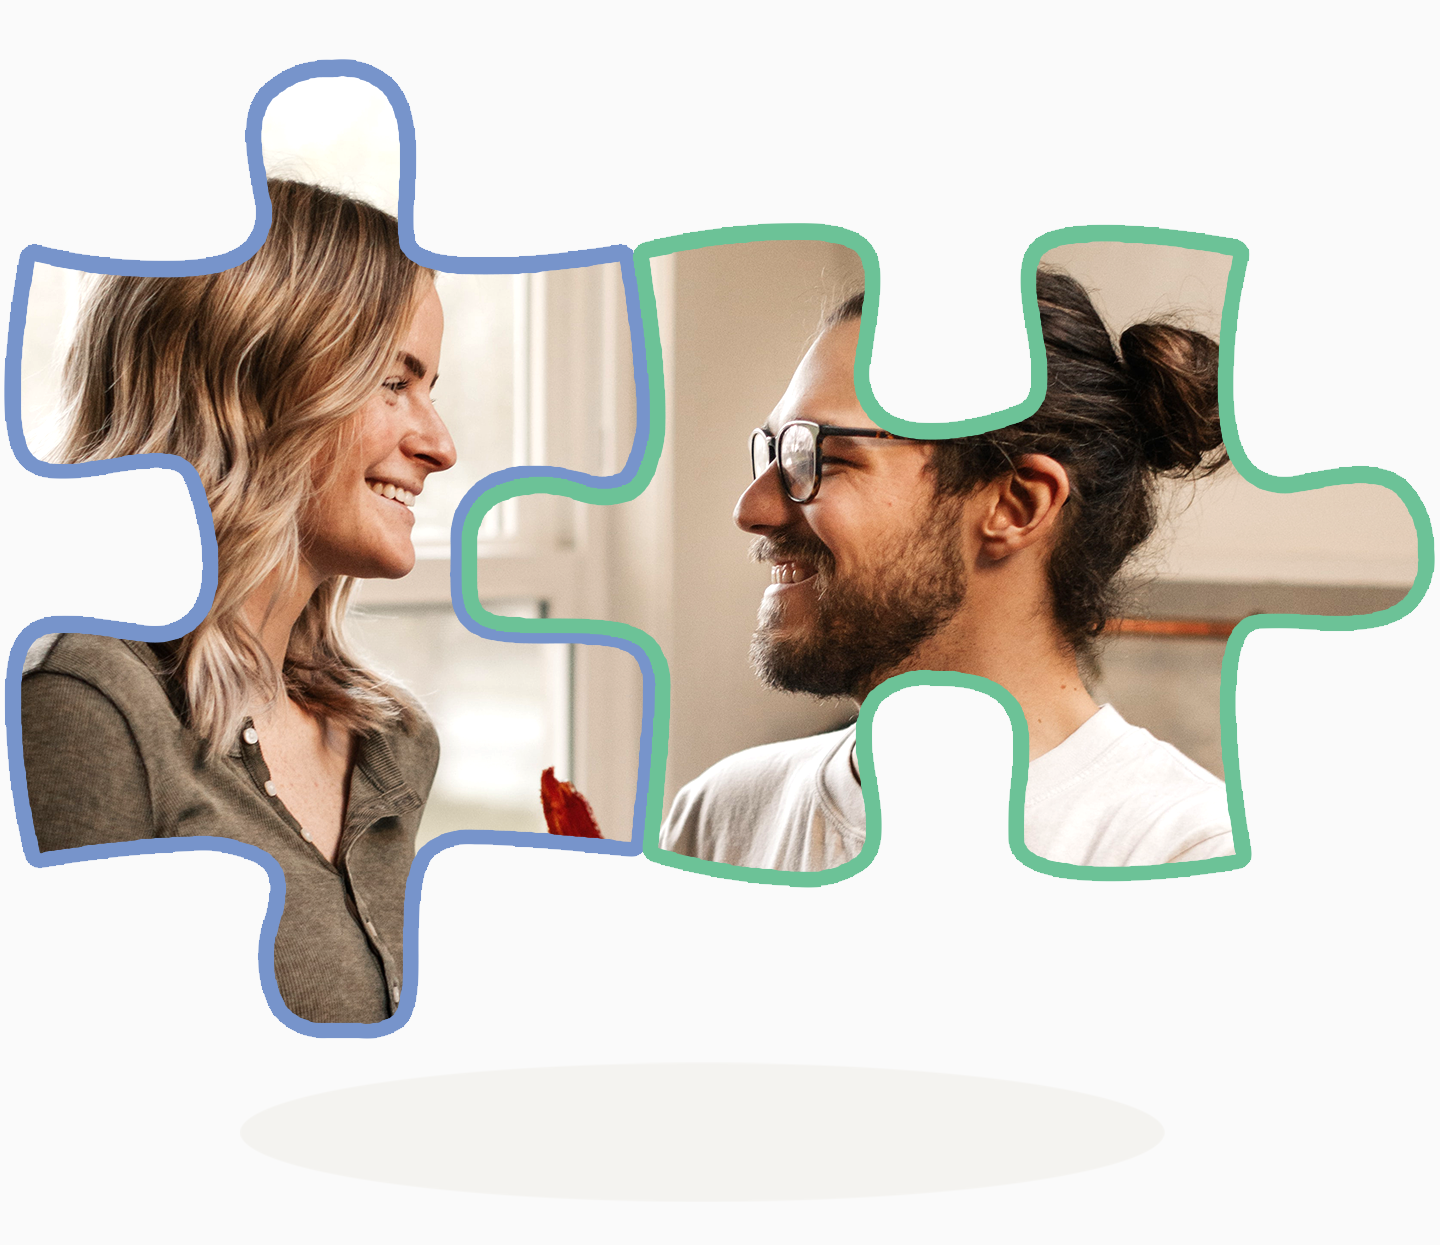 Puzzle pieces fit together to form a happy couple looking at each other.